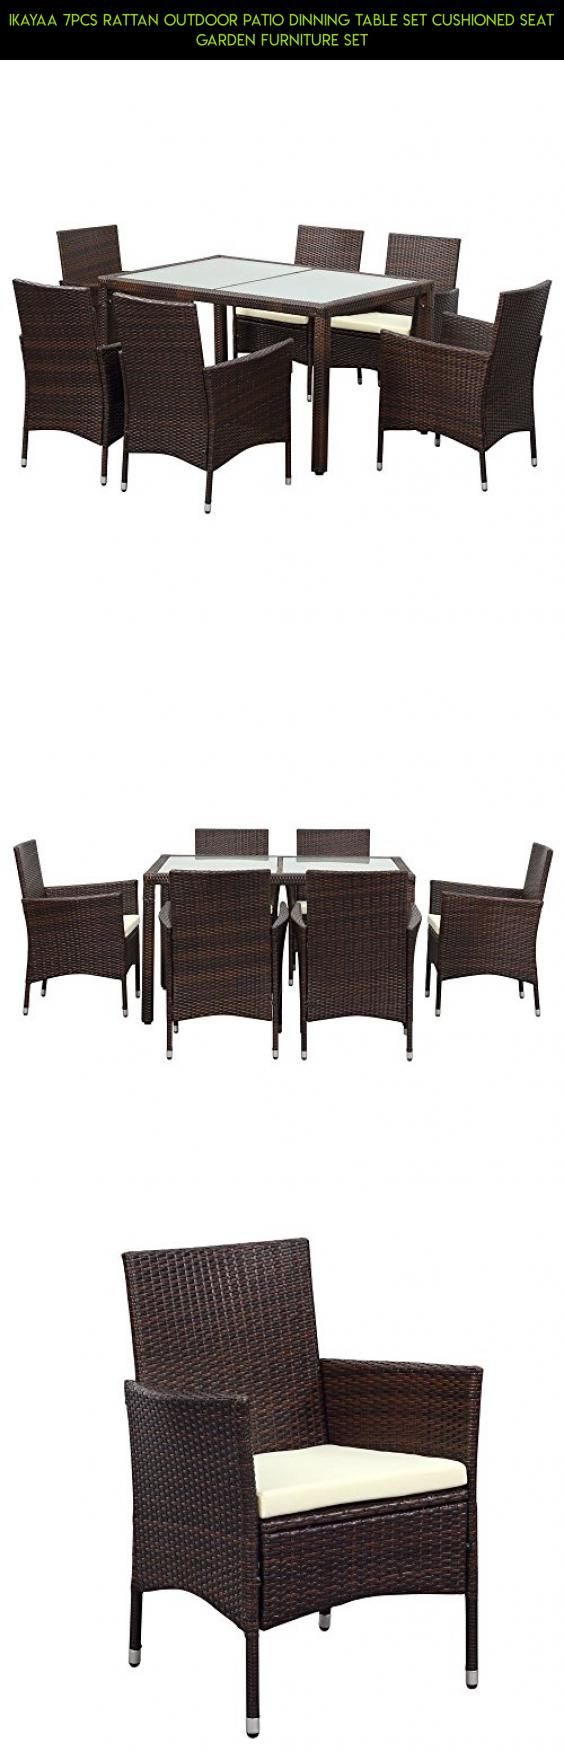 IKAYAA 7PCS Rattan Outdoor Patio Dinning Table Set Cushioned Seat Garden Furniture Set #racing #drone #parts #camera #shopping #gadgets #chairs #furniture #plans #fpv #products #kit #technology #6 #patio #tech